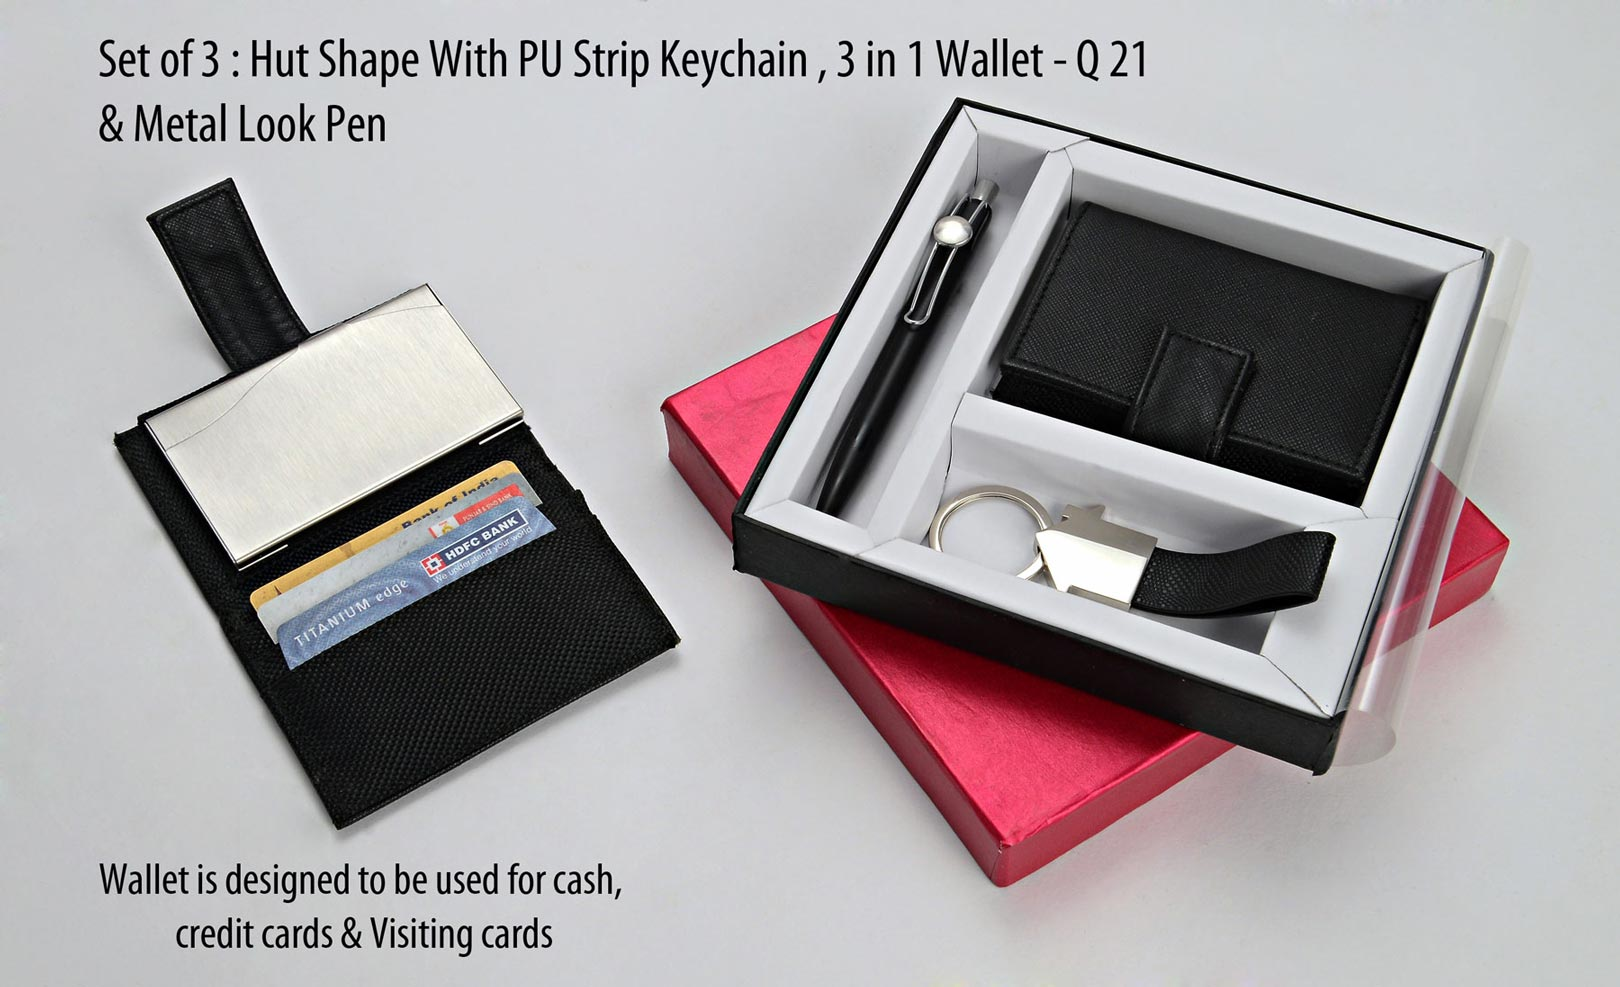 Q21 - Set of 3 : Hut shape with PU strip Keychain, 3 in 1 wallet (For cash, cards and visiting cards) & Metal look Pen